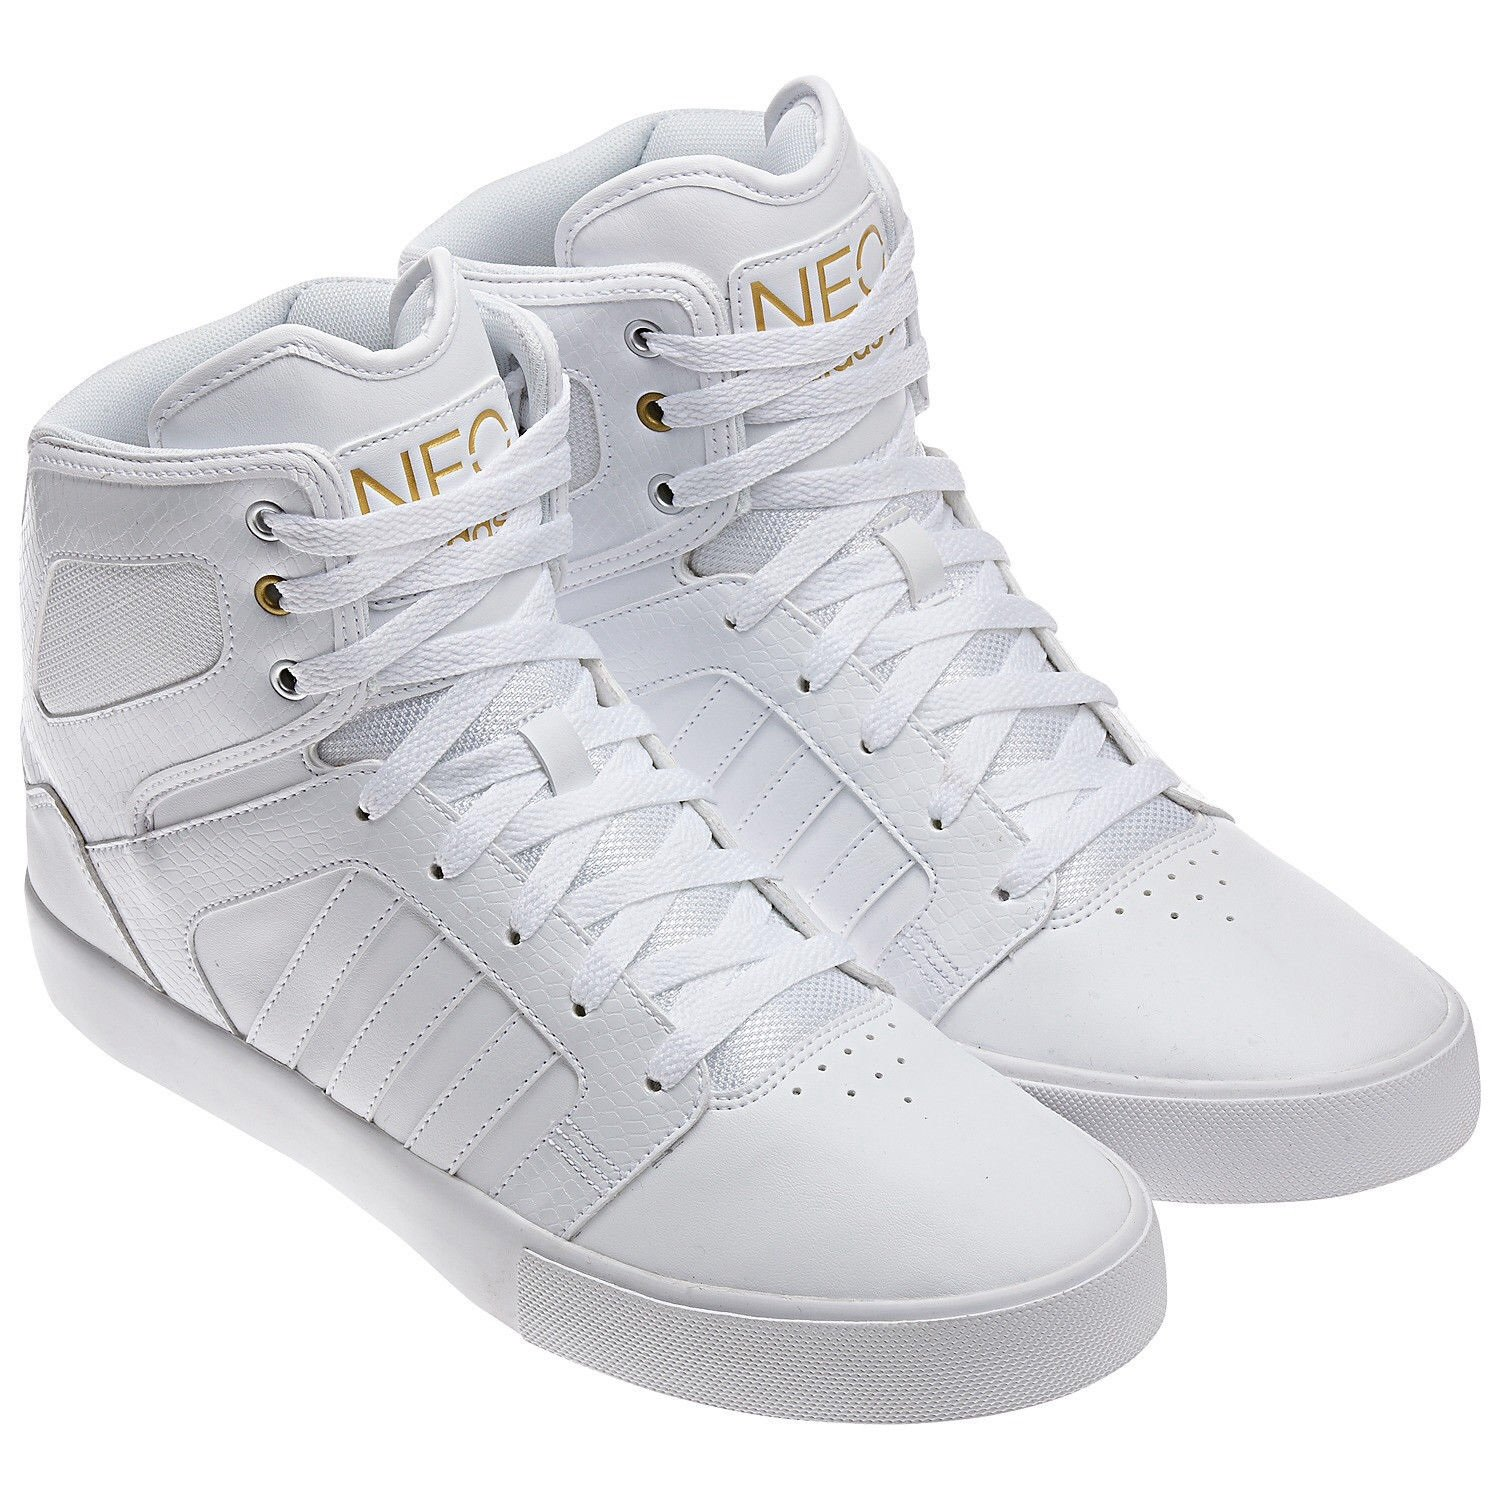 1e2b239610c ... inexpensive galleon adidas neo bbneo hi top ortholite q38754 white gold  leather whiteout mens shoes size